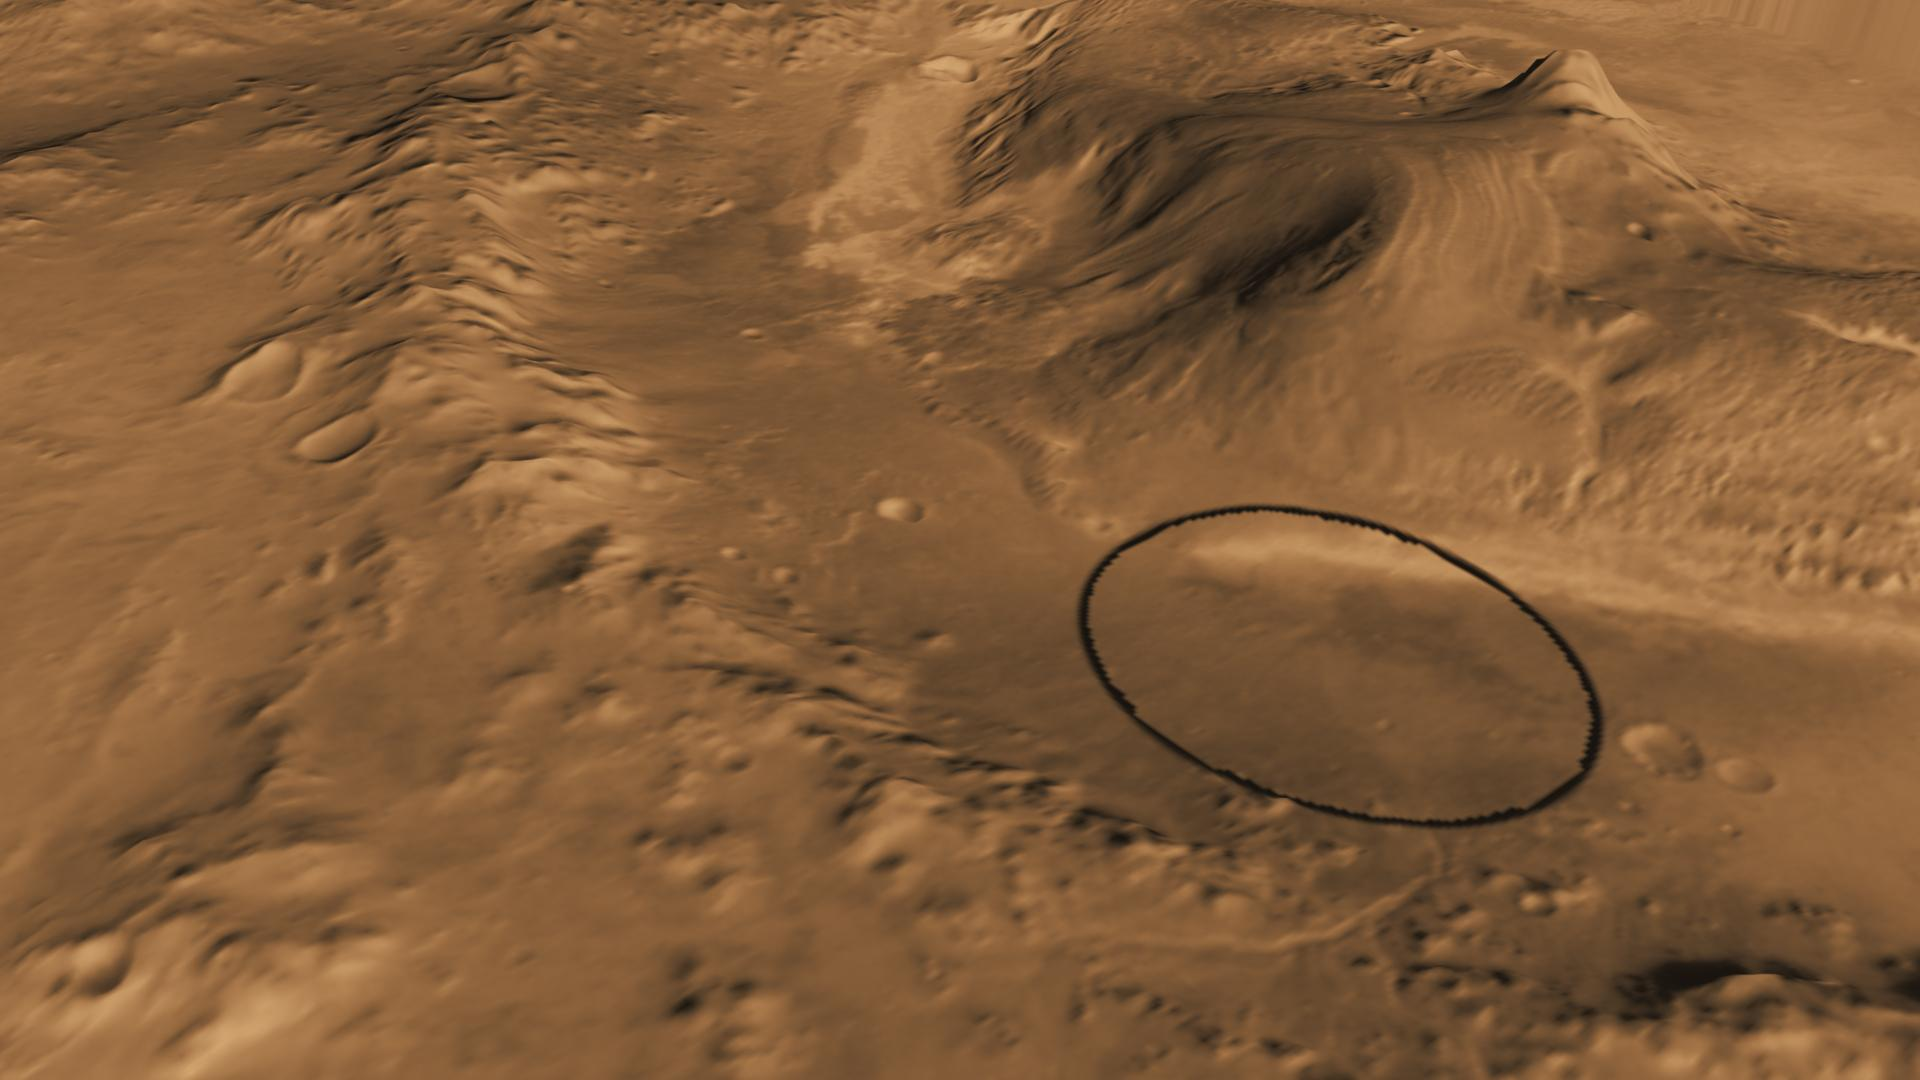 Could NASA Rover Find Signs of Martian Life in Giant Crater?